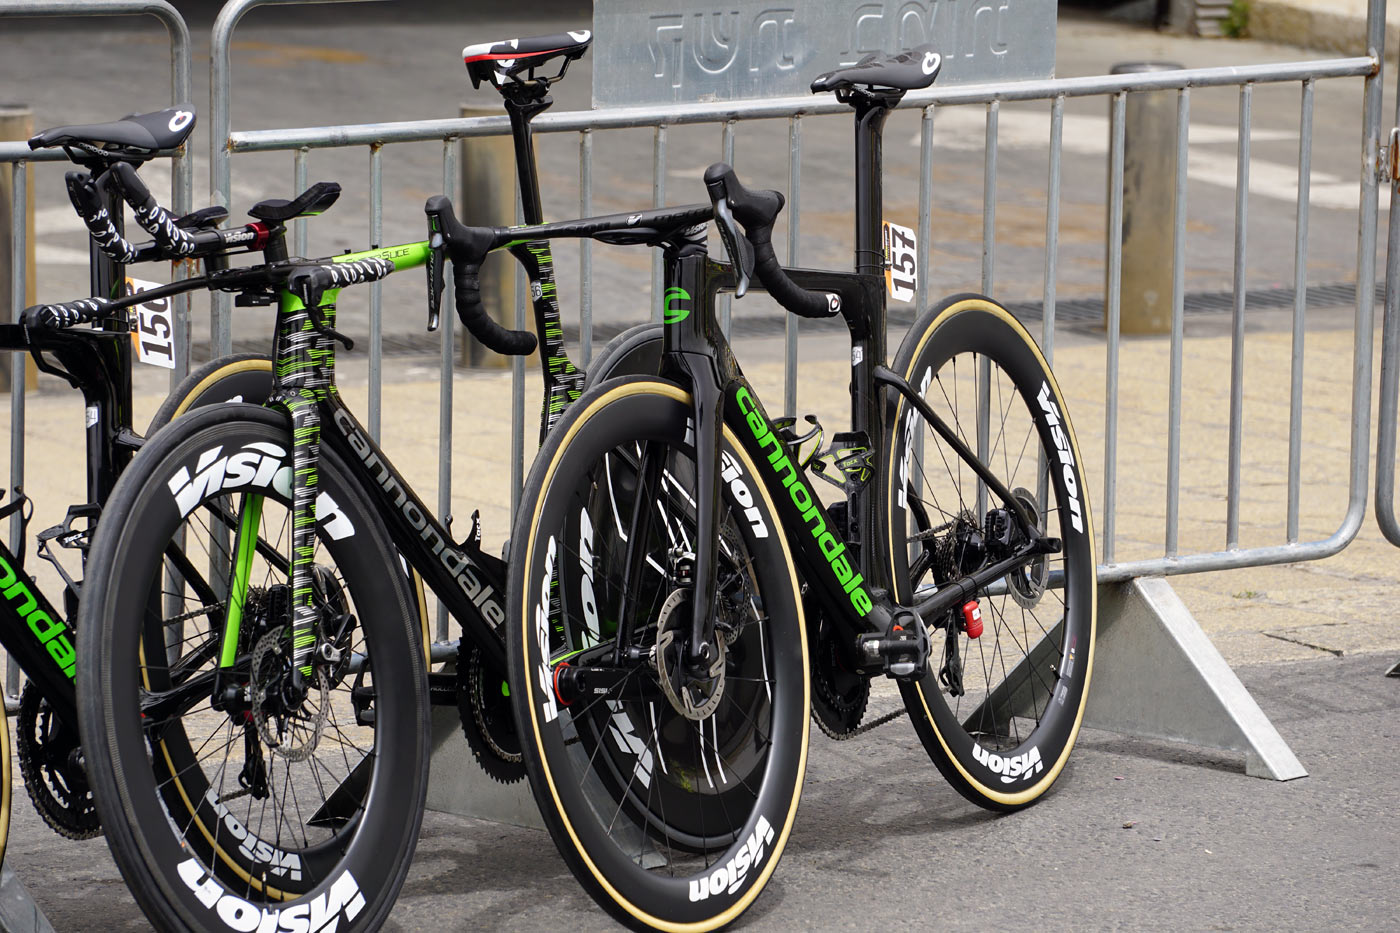 prototype cannondale aero disc brake road bike spotted at 2018 giro  d-italia under Drapac 269dc4113